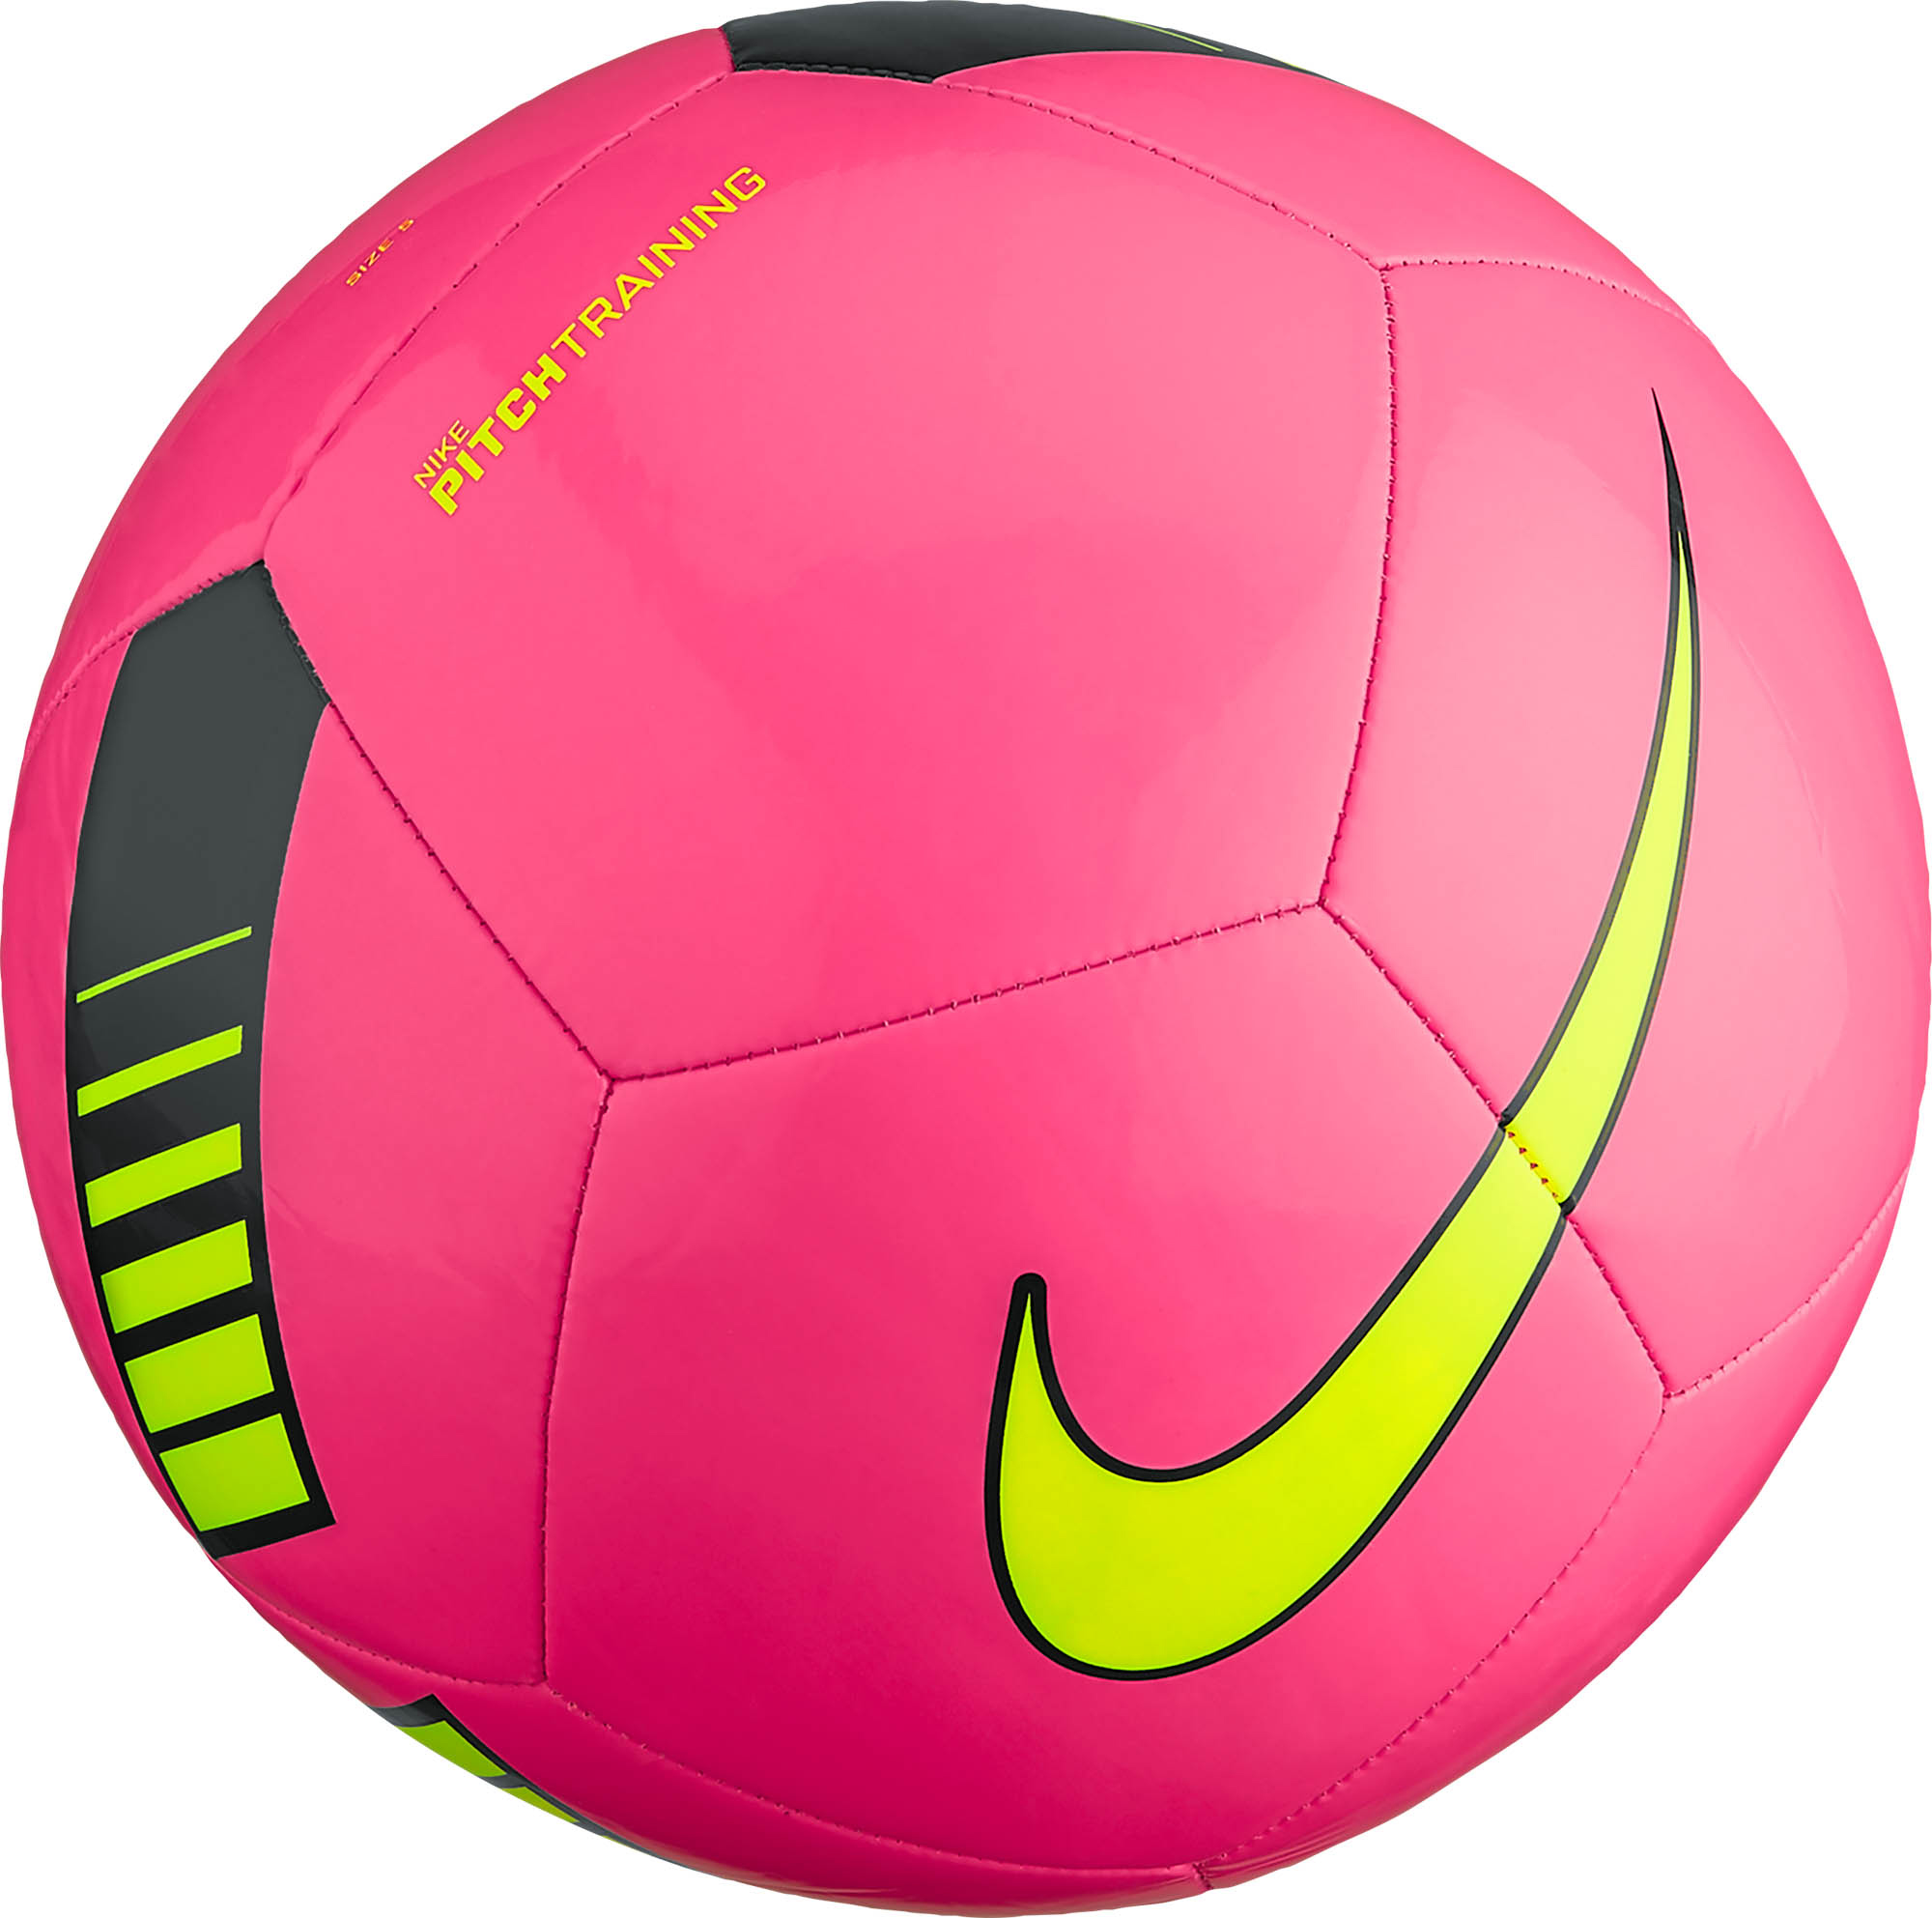 2000x1985 Nike Pitch Training Soccer Ball